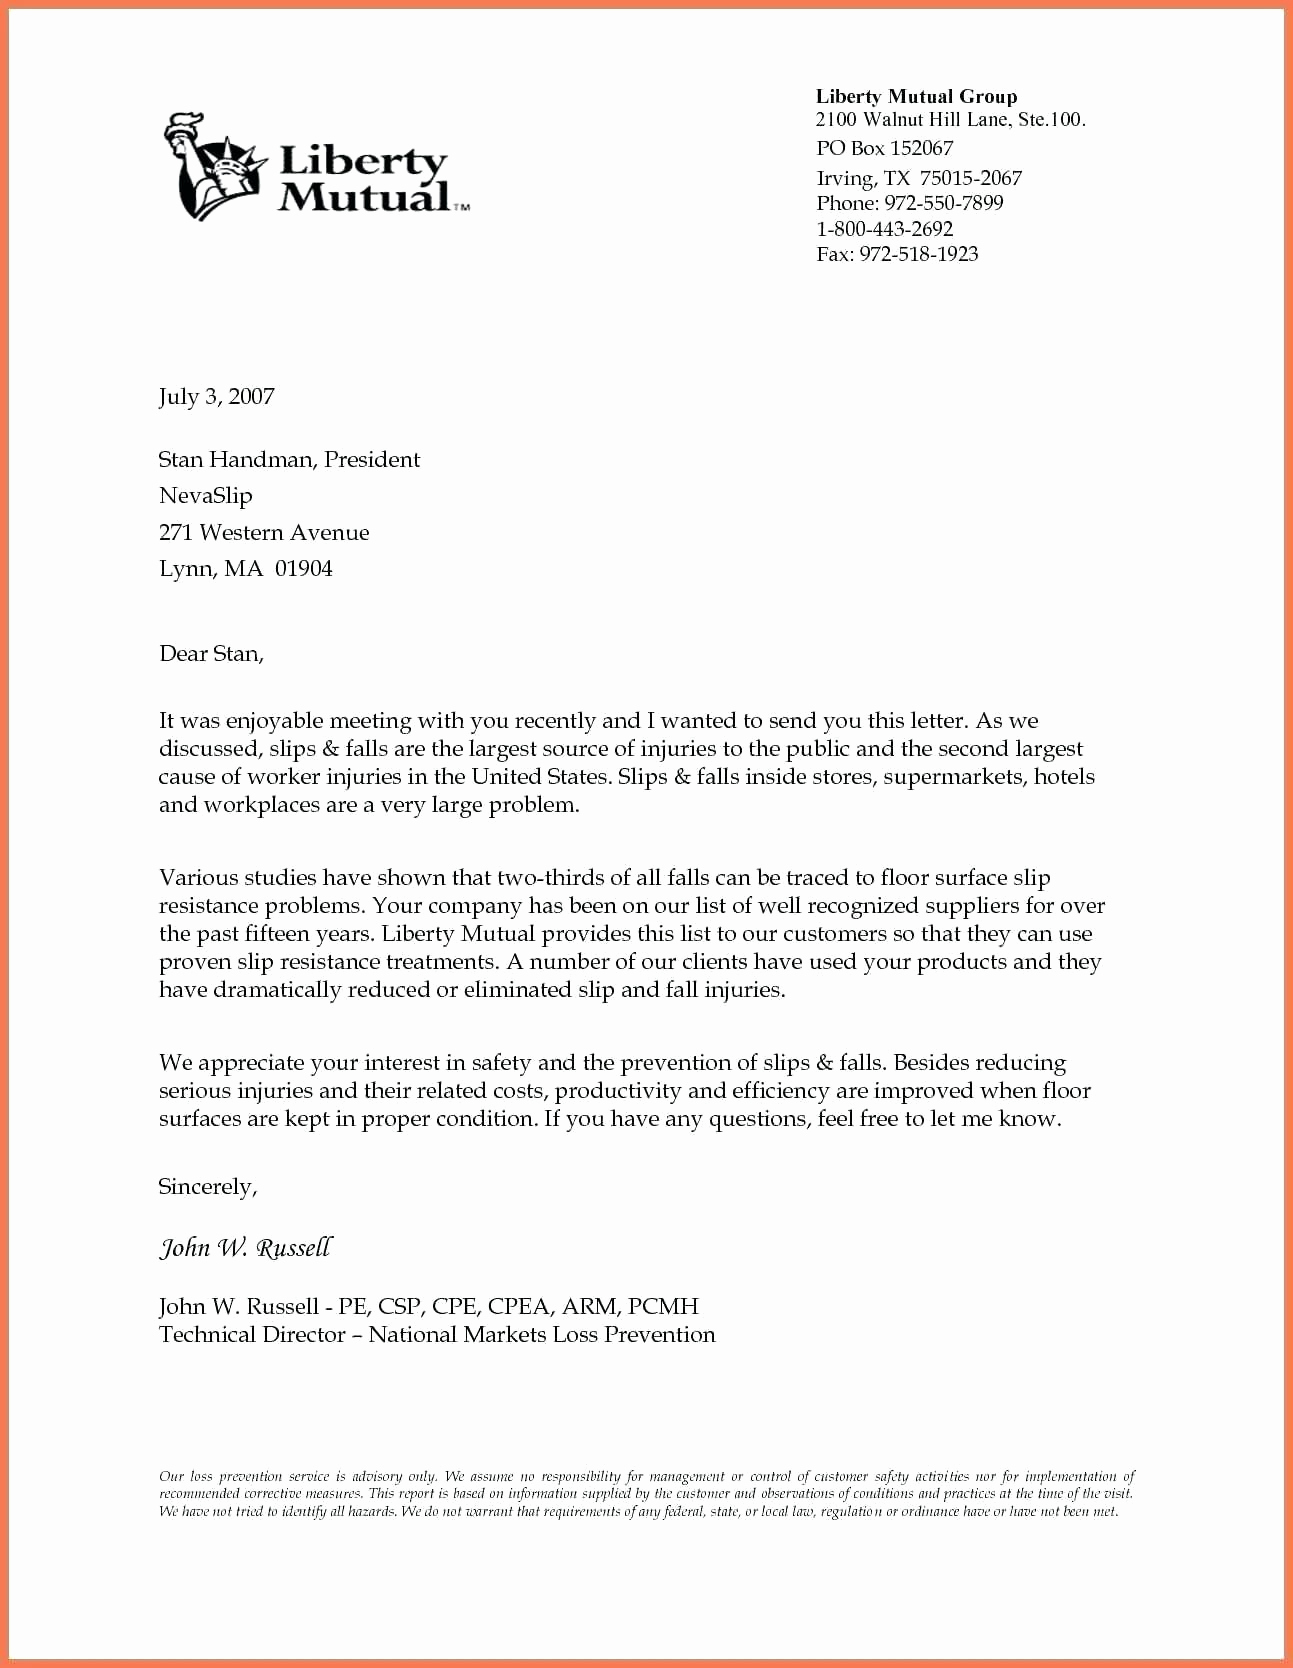 Formal Letter format Sample Awesome formal Business Letter Templates